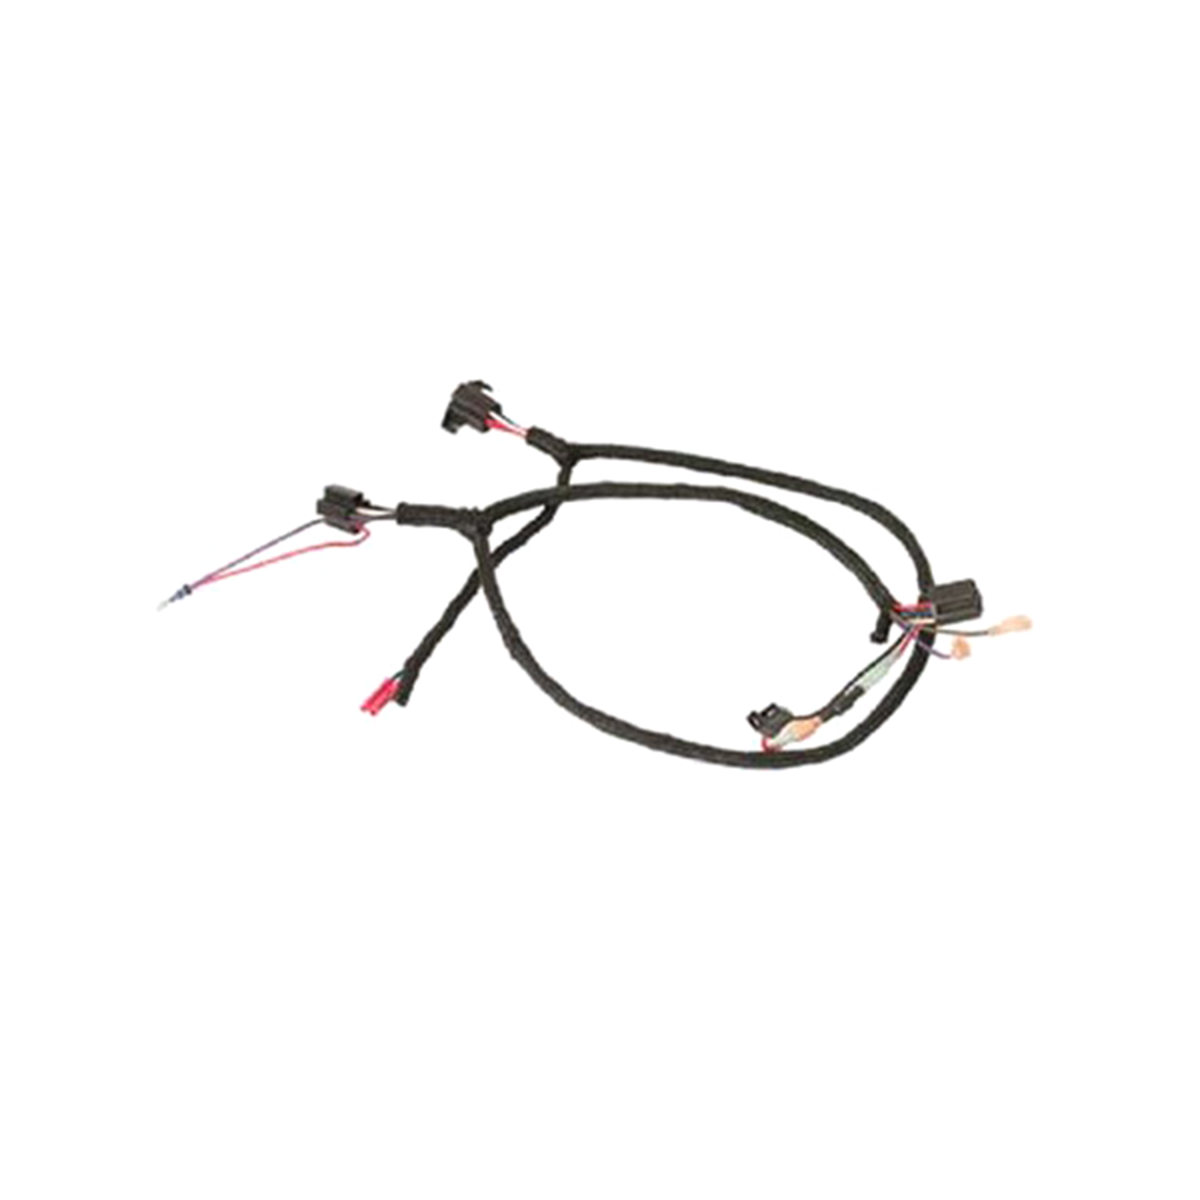 500030 dixie chopper kohler  generac wiring harness